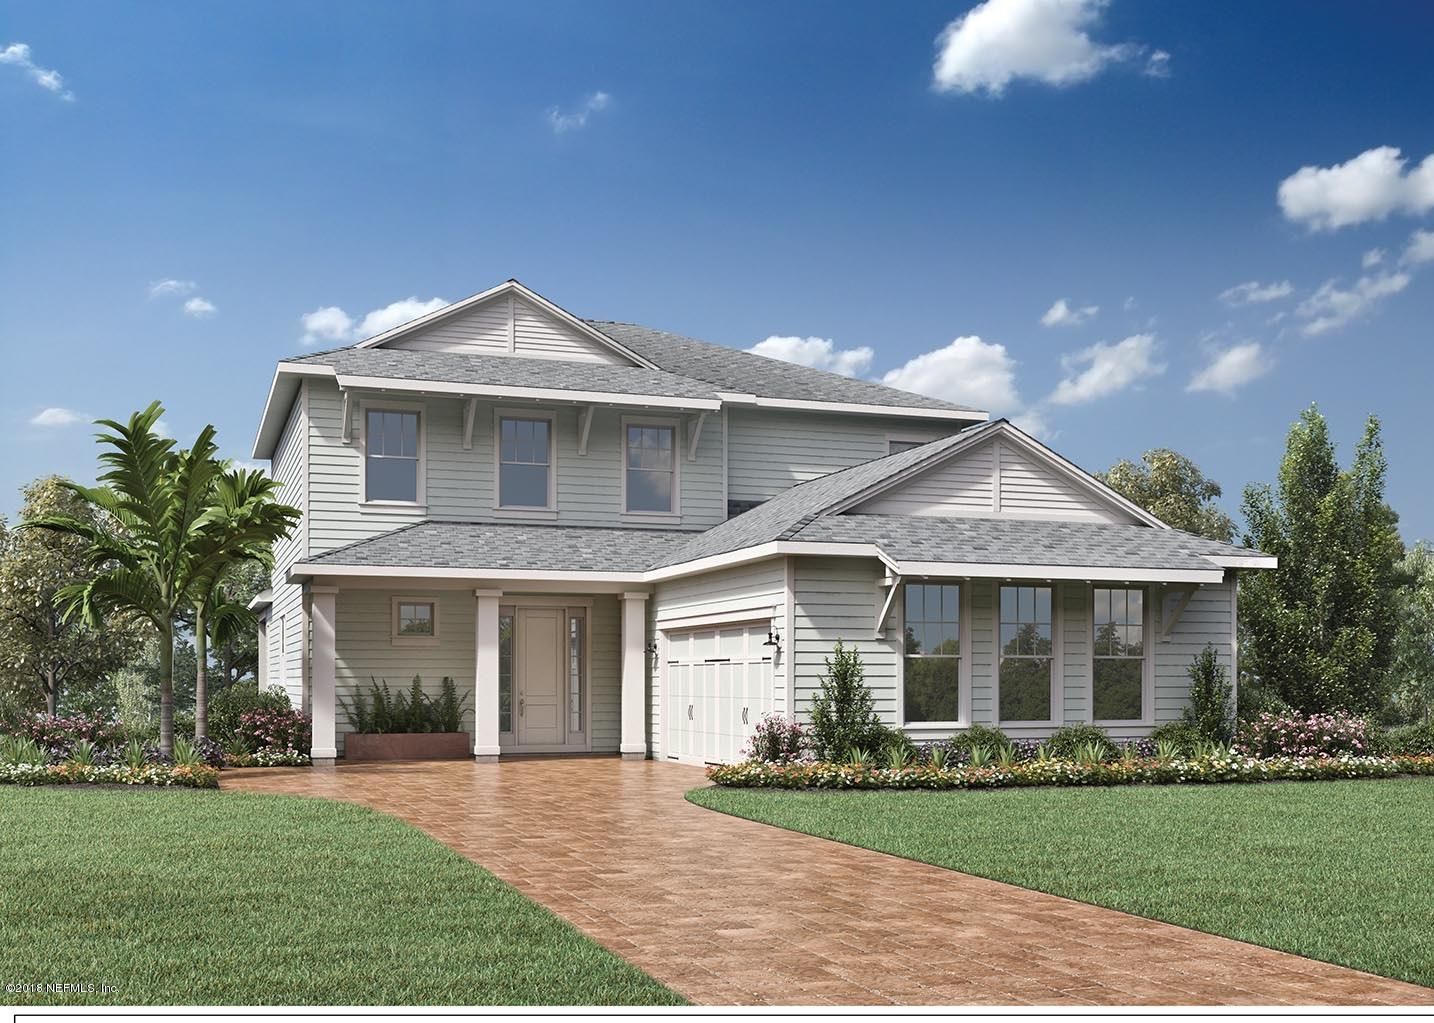 90 PARK BLUFF, PONTE VEDRA, FLORIDA 32081, 4 Bedrooms Bedrooms, ,3 BathroomsBathrooms,Residential - single family,For sale,PARK BLUFF,949641